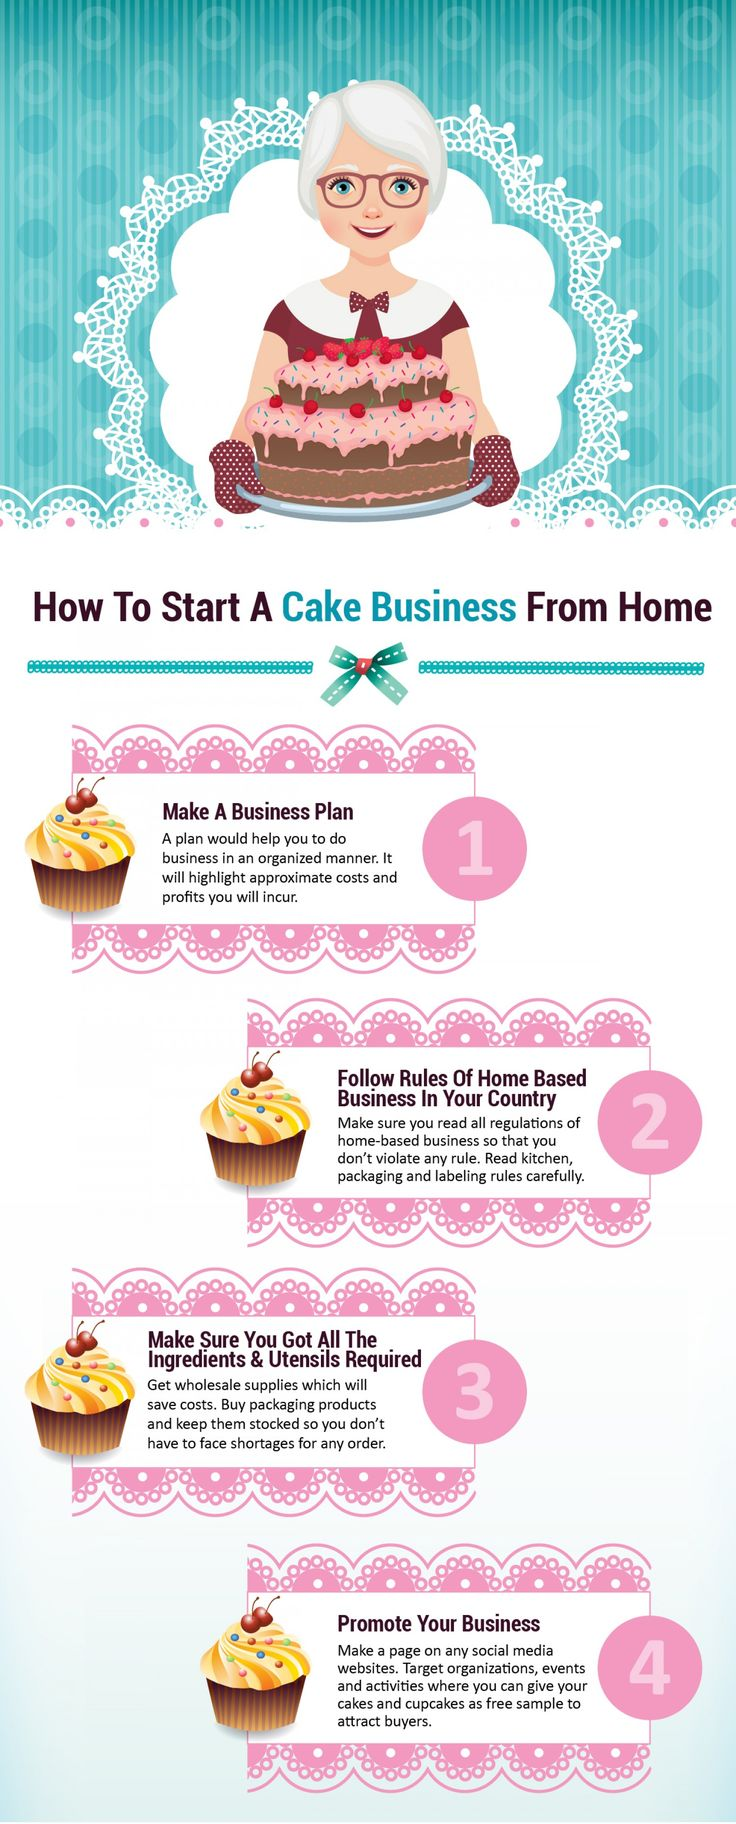 31 Catchy and Cute Cake and Cupcake Business Names | Biz Junky